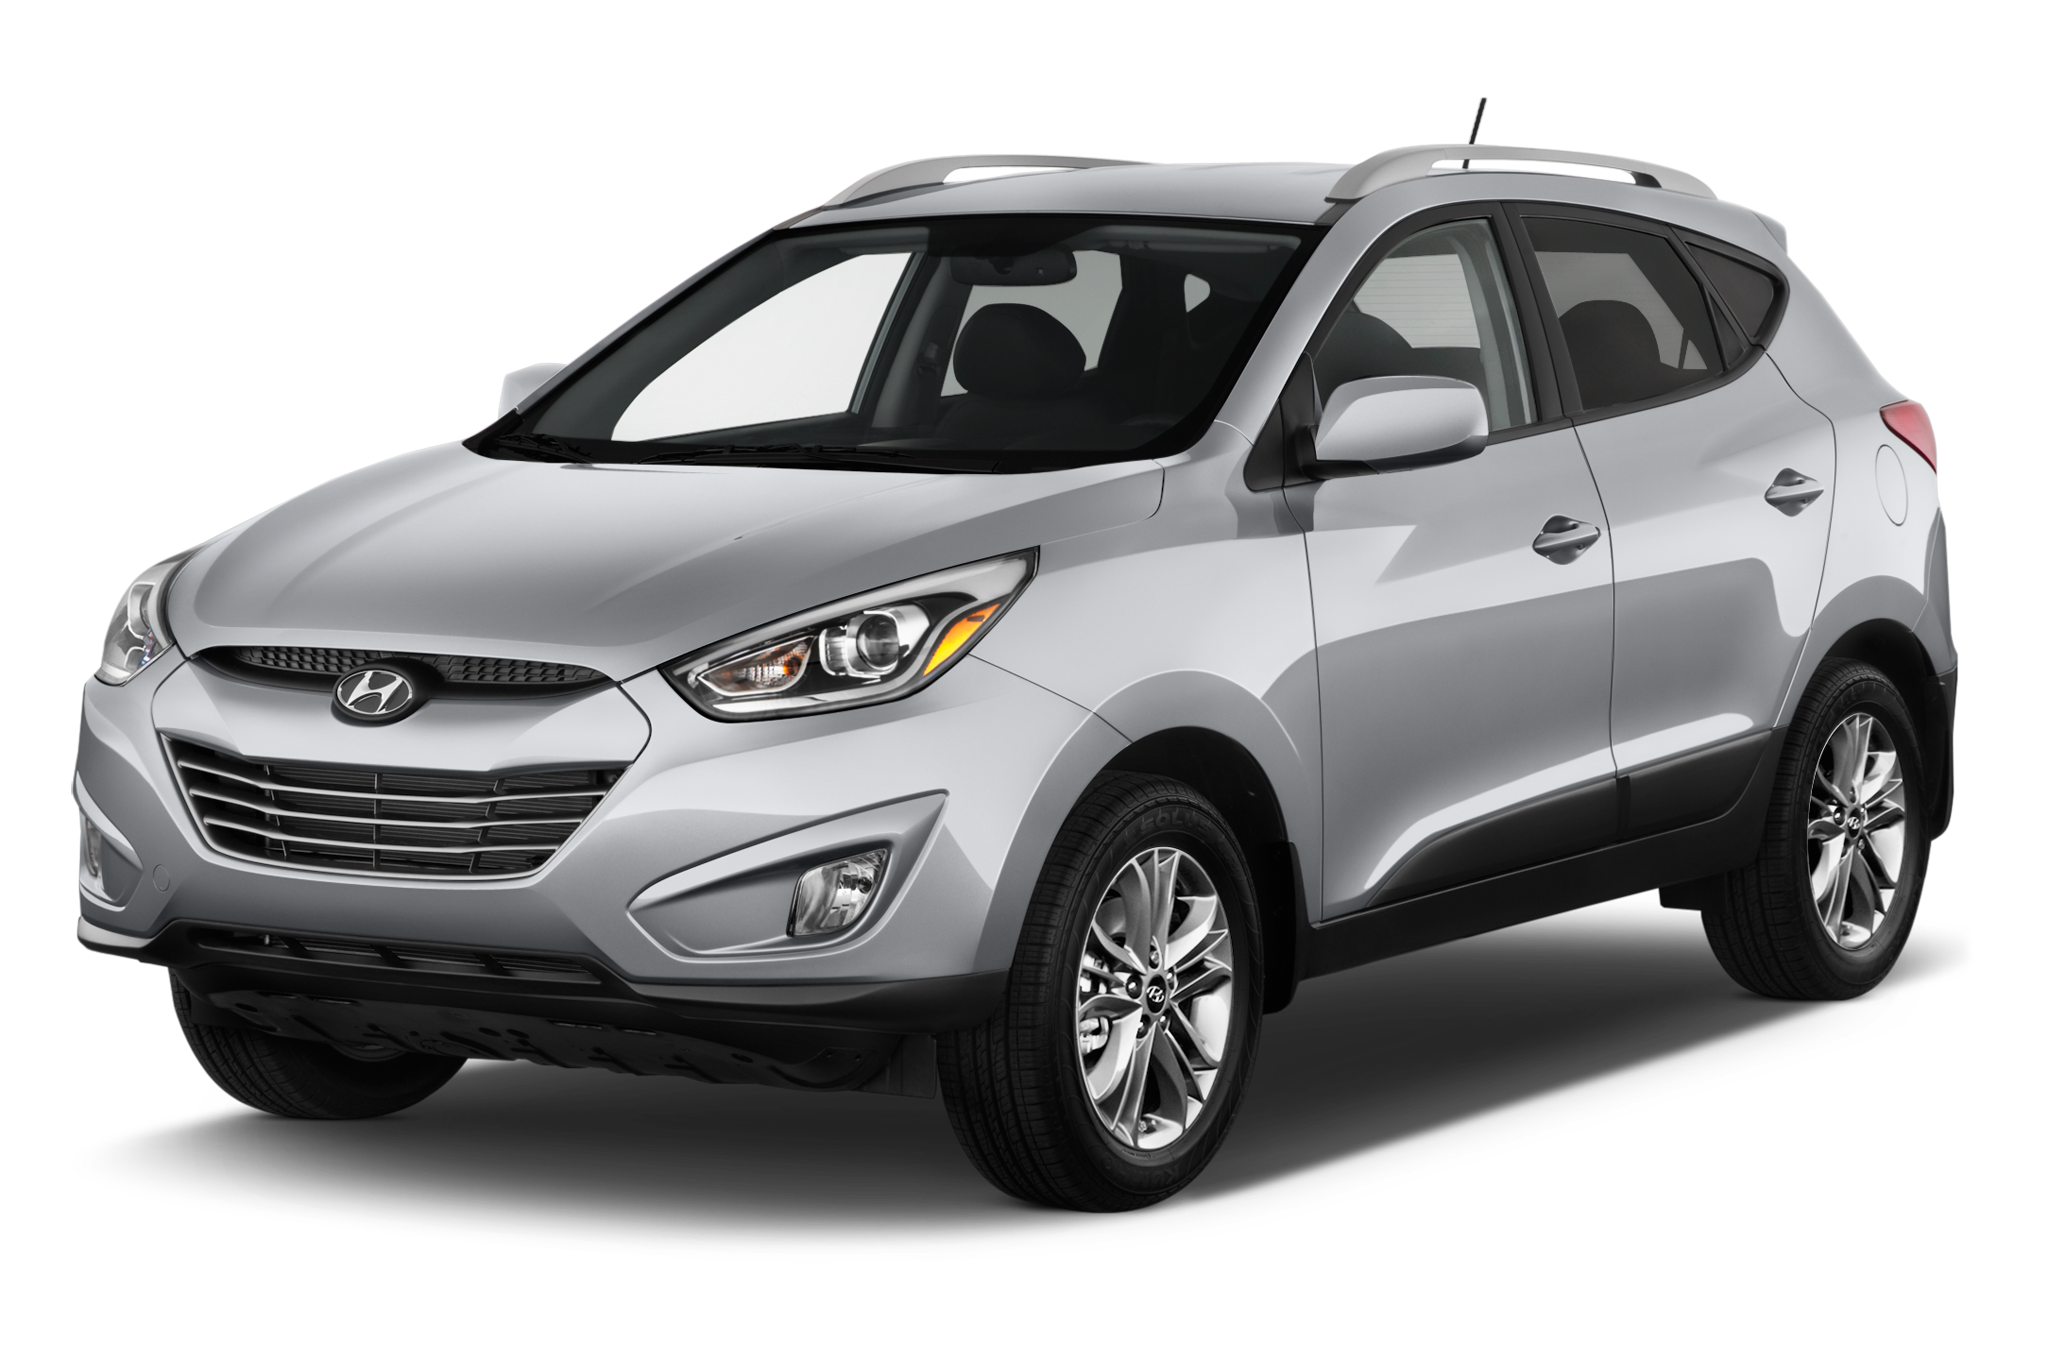 2014 Hyundai Tucson Fuel Cell Debuts At 2013 Los Angeles